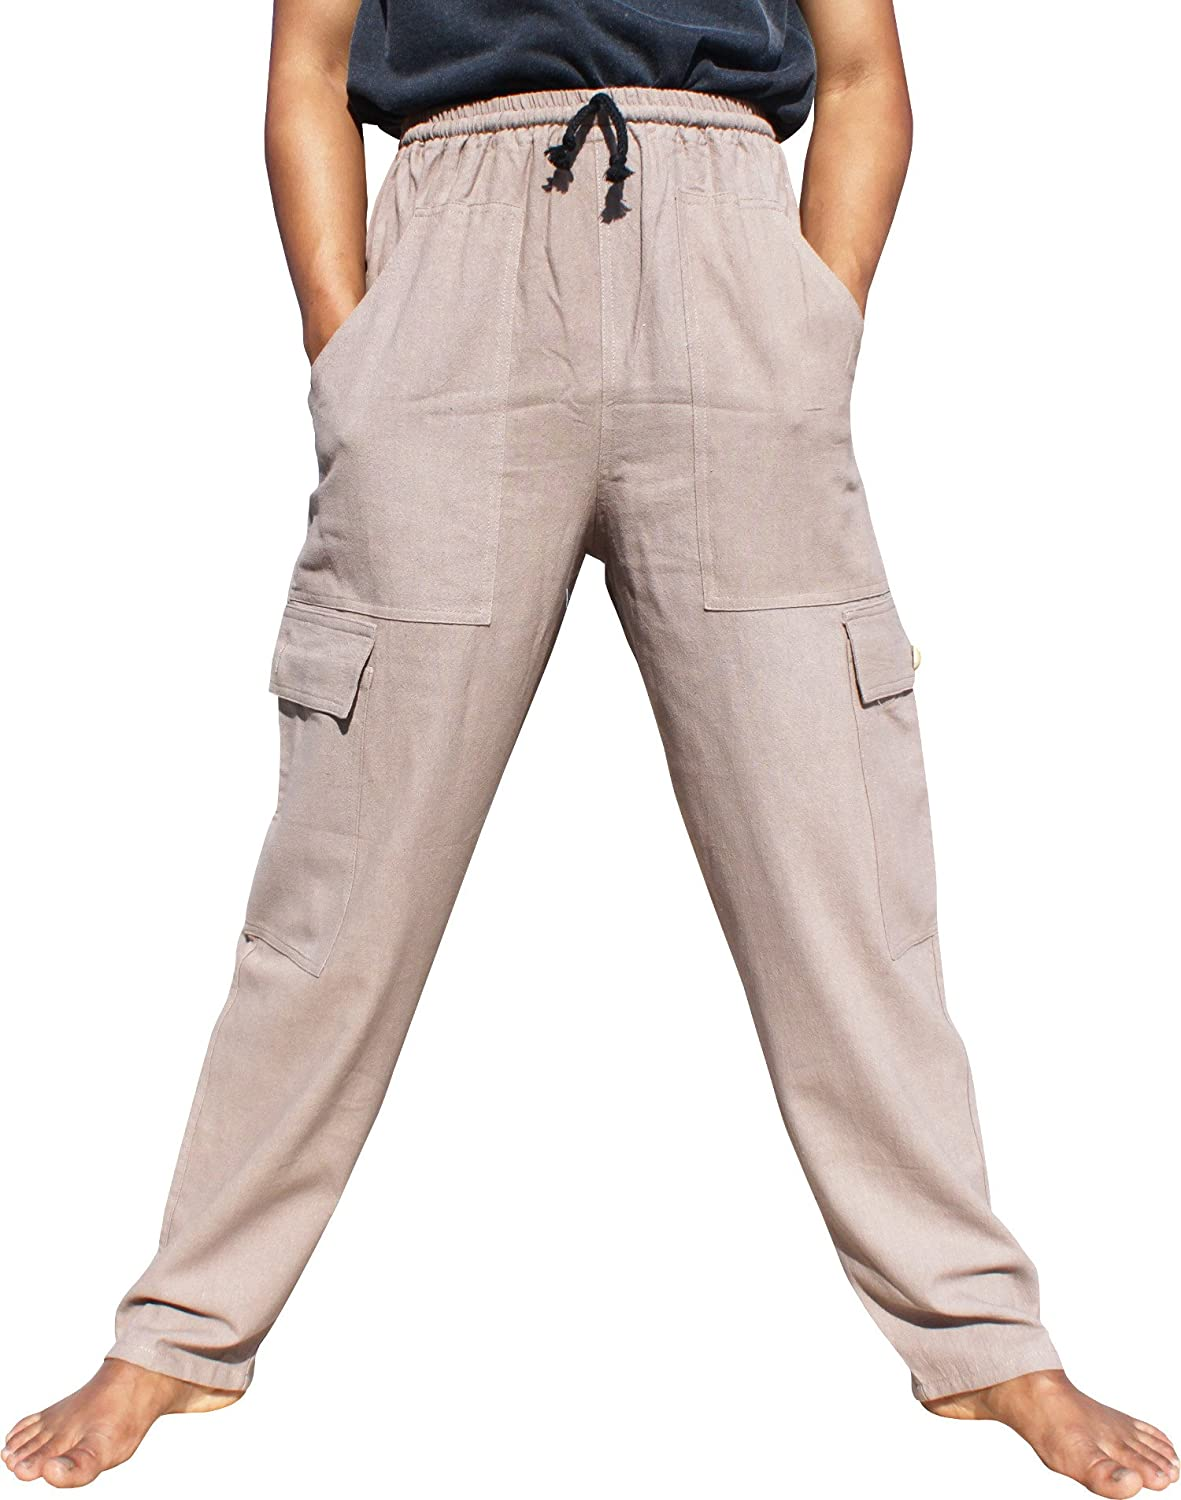 RaanPahMuang Renaissance Max 68% OFF Cargo Trousers Winter Muang Al sold out. 100% Cotto